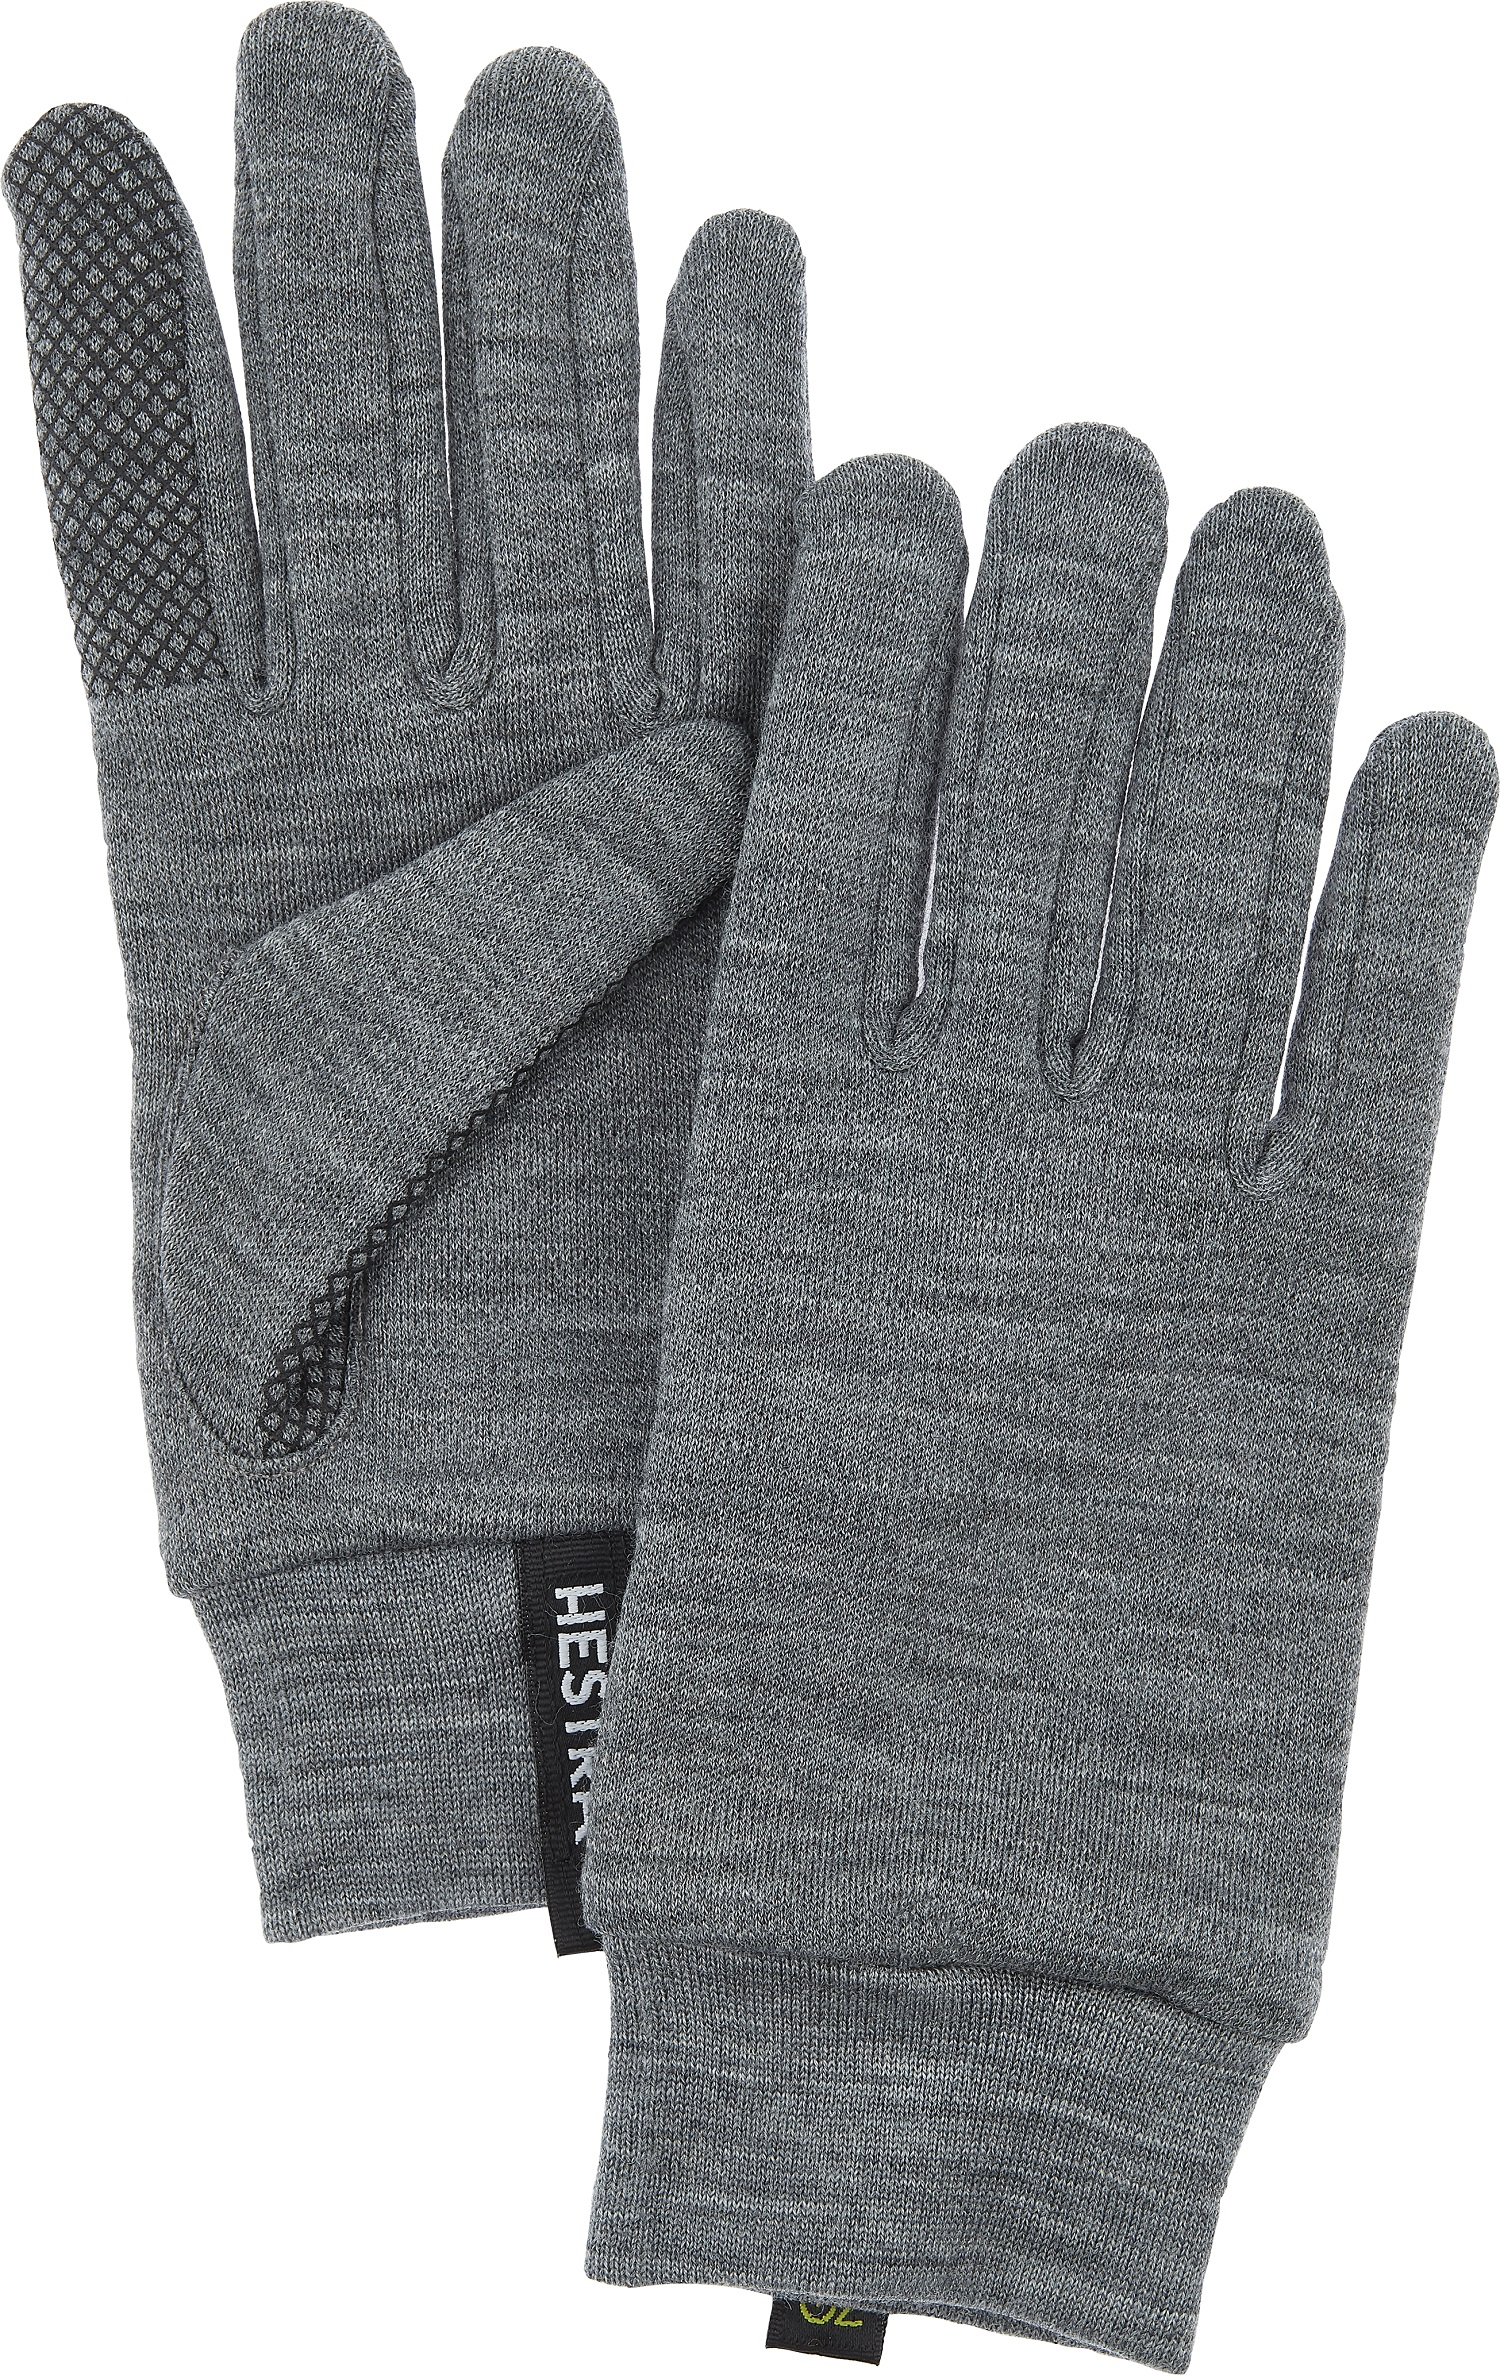 Hestra Merino Touch Point 5 Finger Glove Uni 34440 350 06 Color Grey Mens Size 6 Additional Features Brushed Inside W Free S H